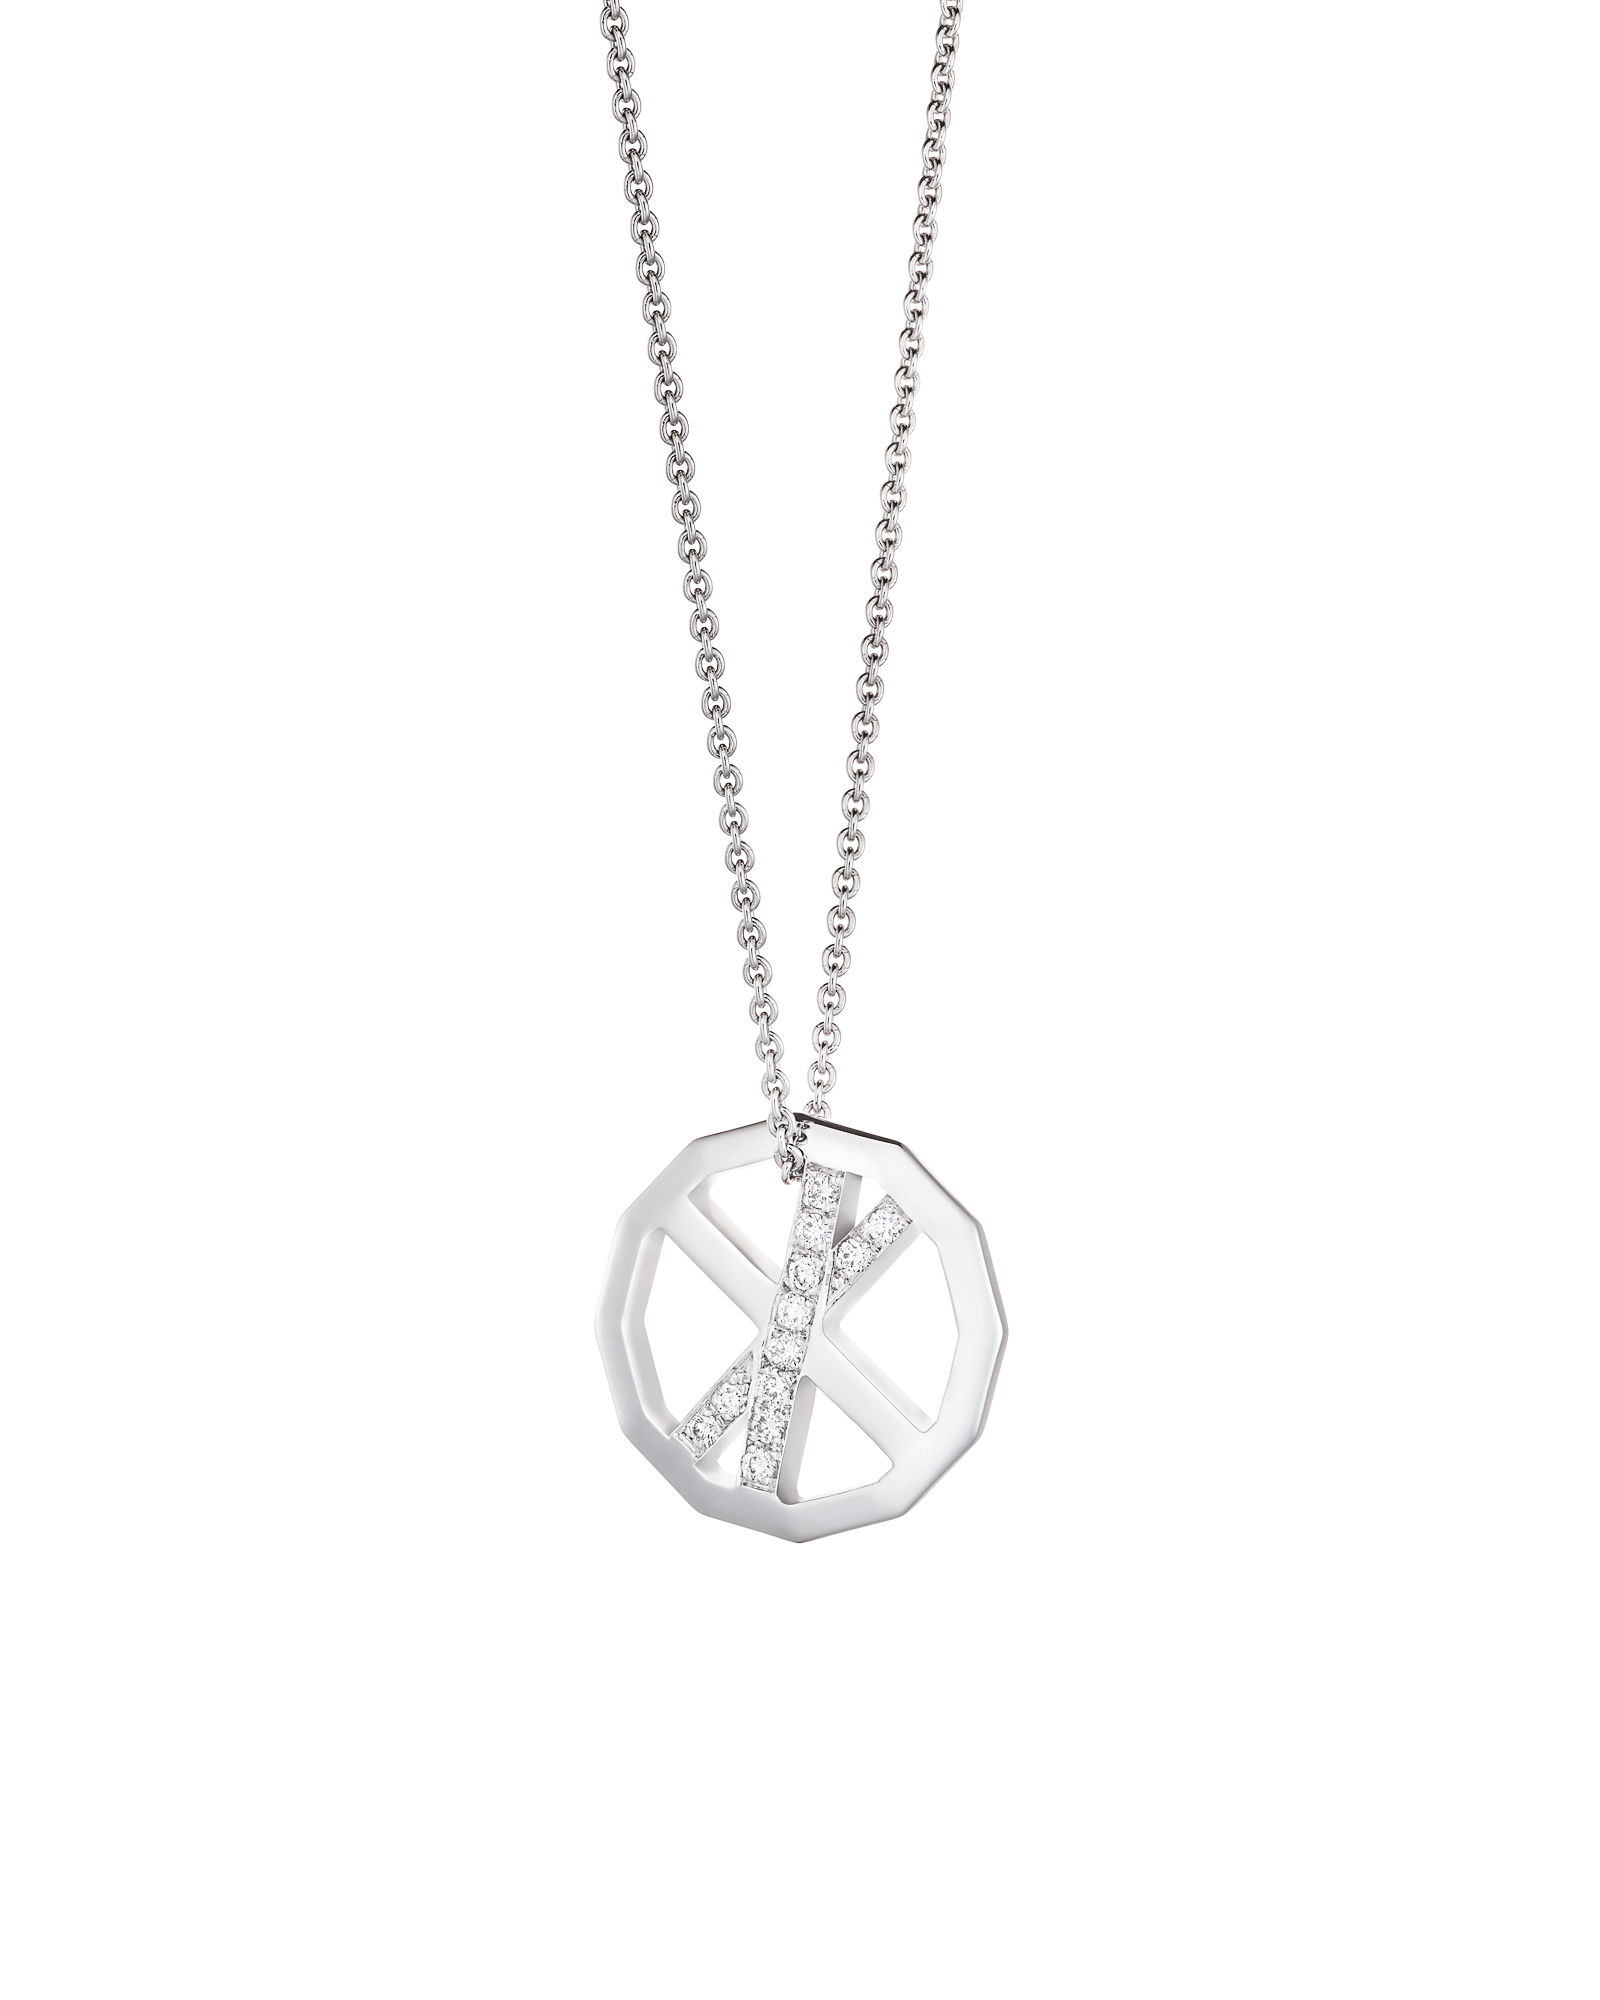 VOYAGER DUO PENDANT / PAVE EDITION